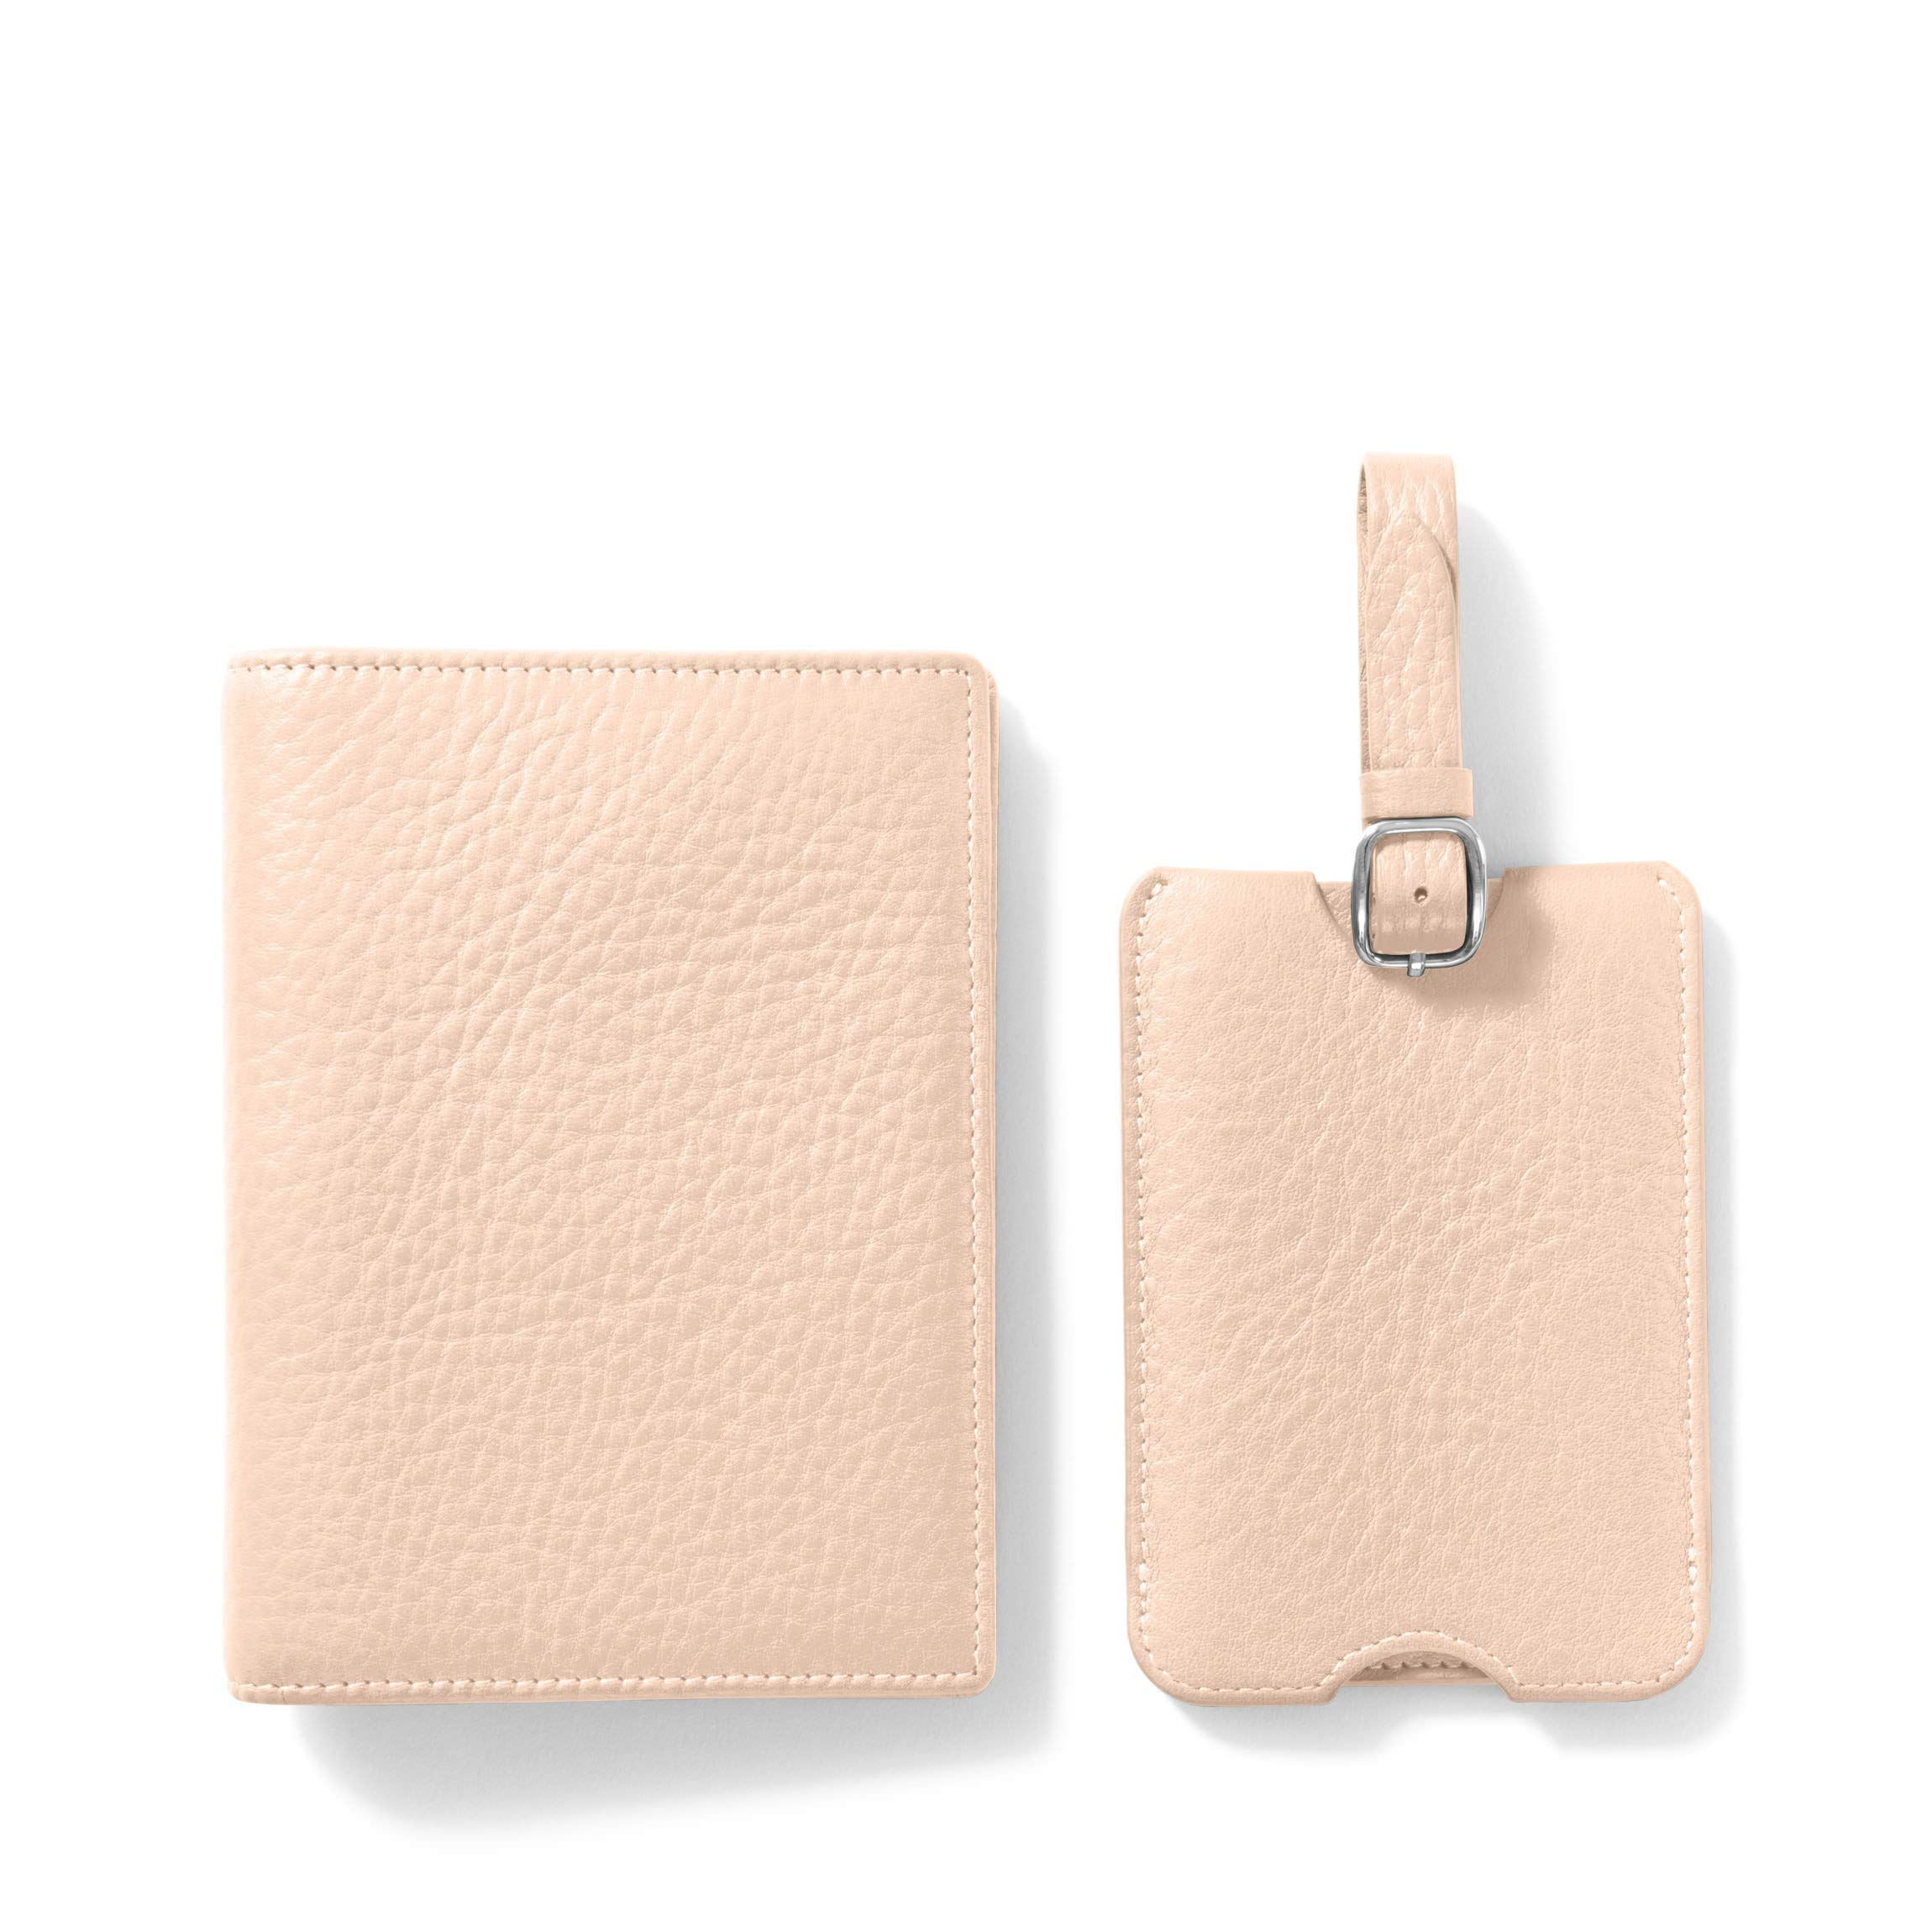 Leatherology Rose Deluxe Passport Cover + Luggage Tag Set